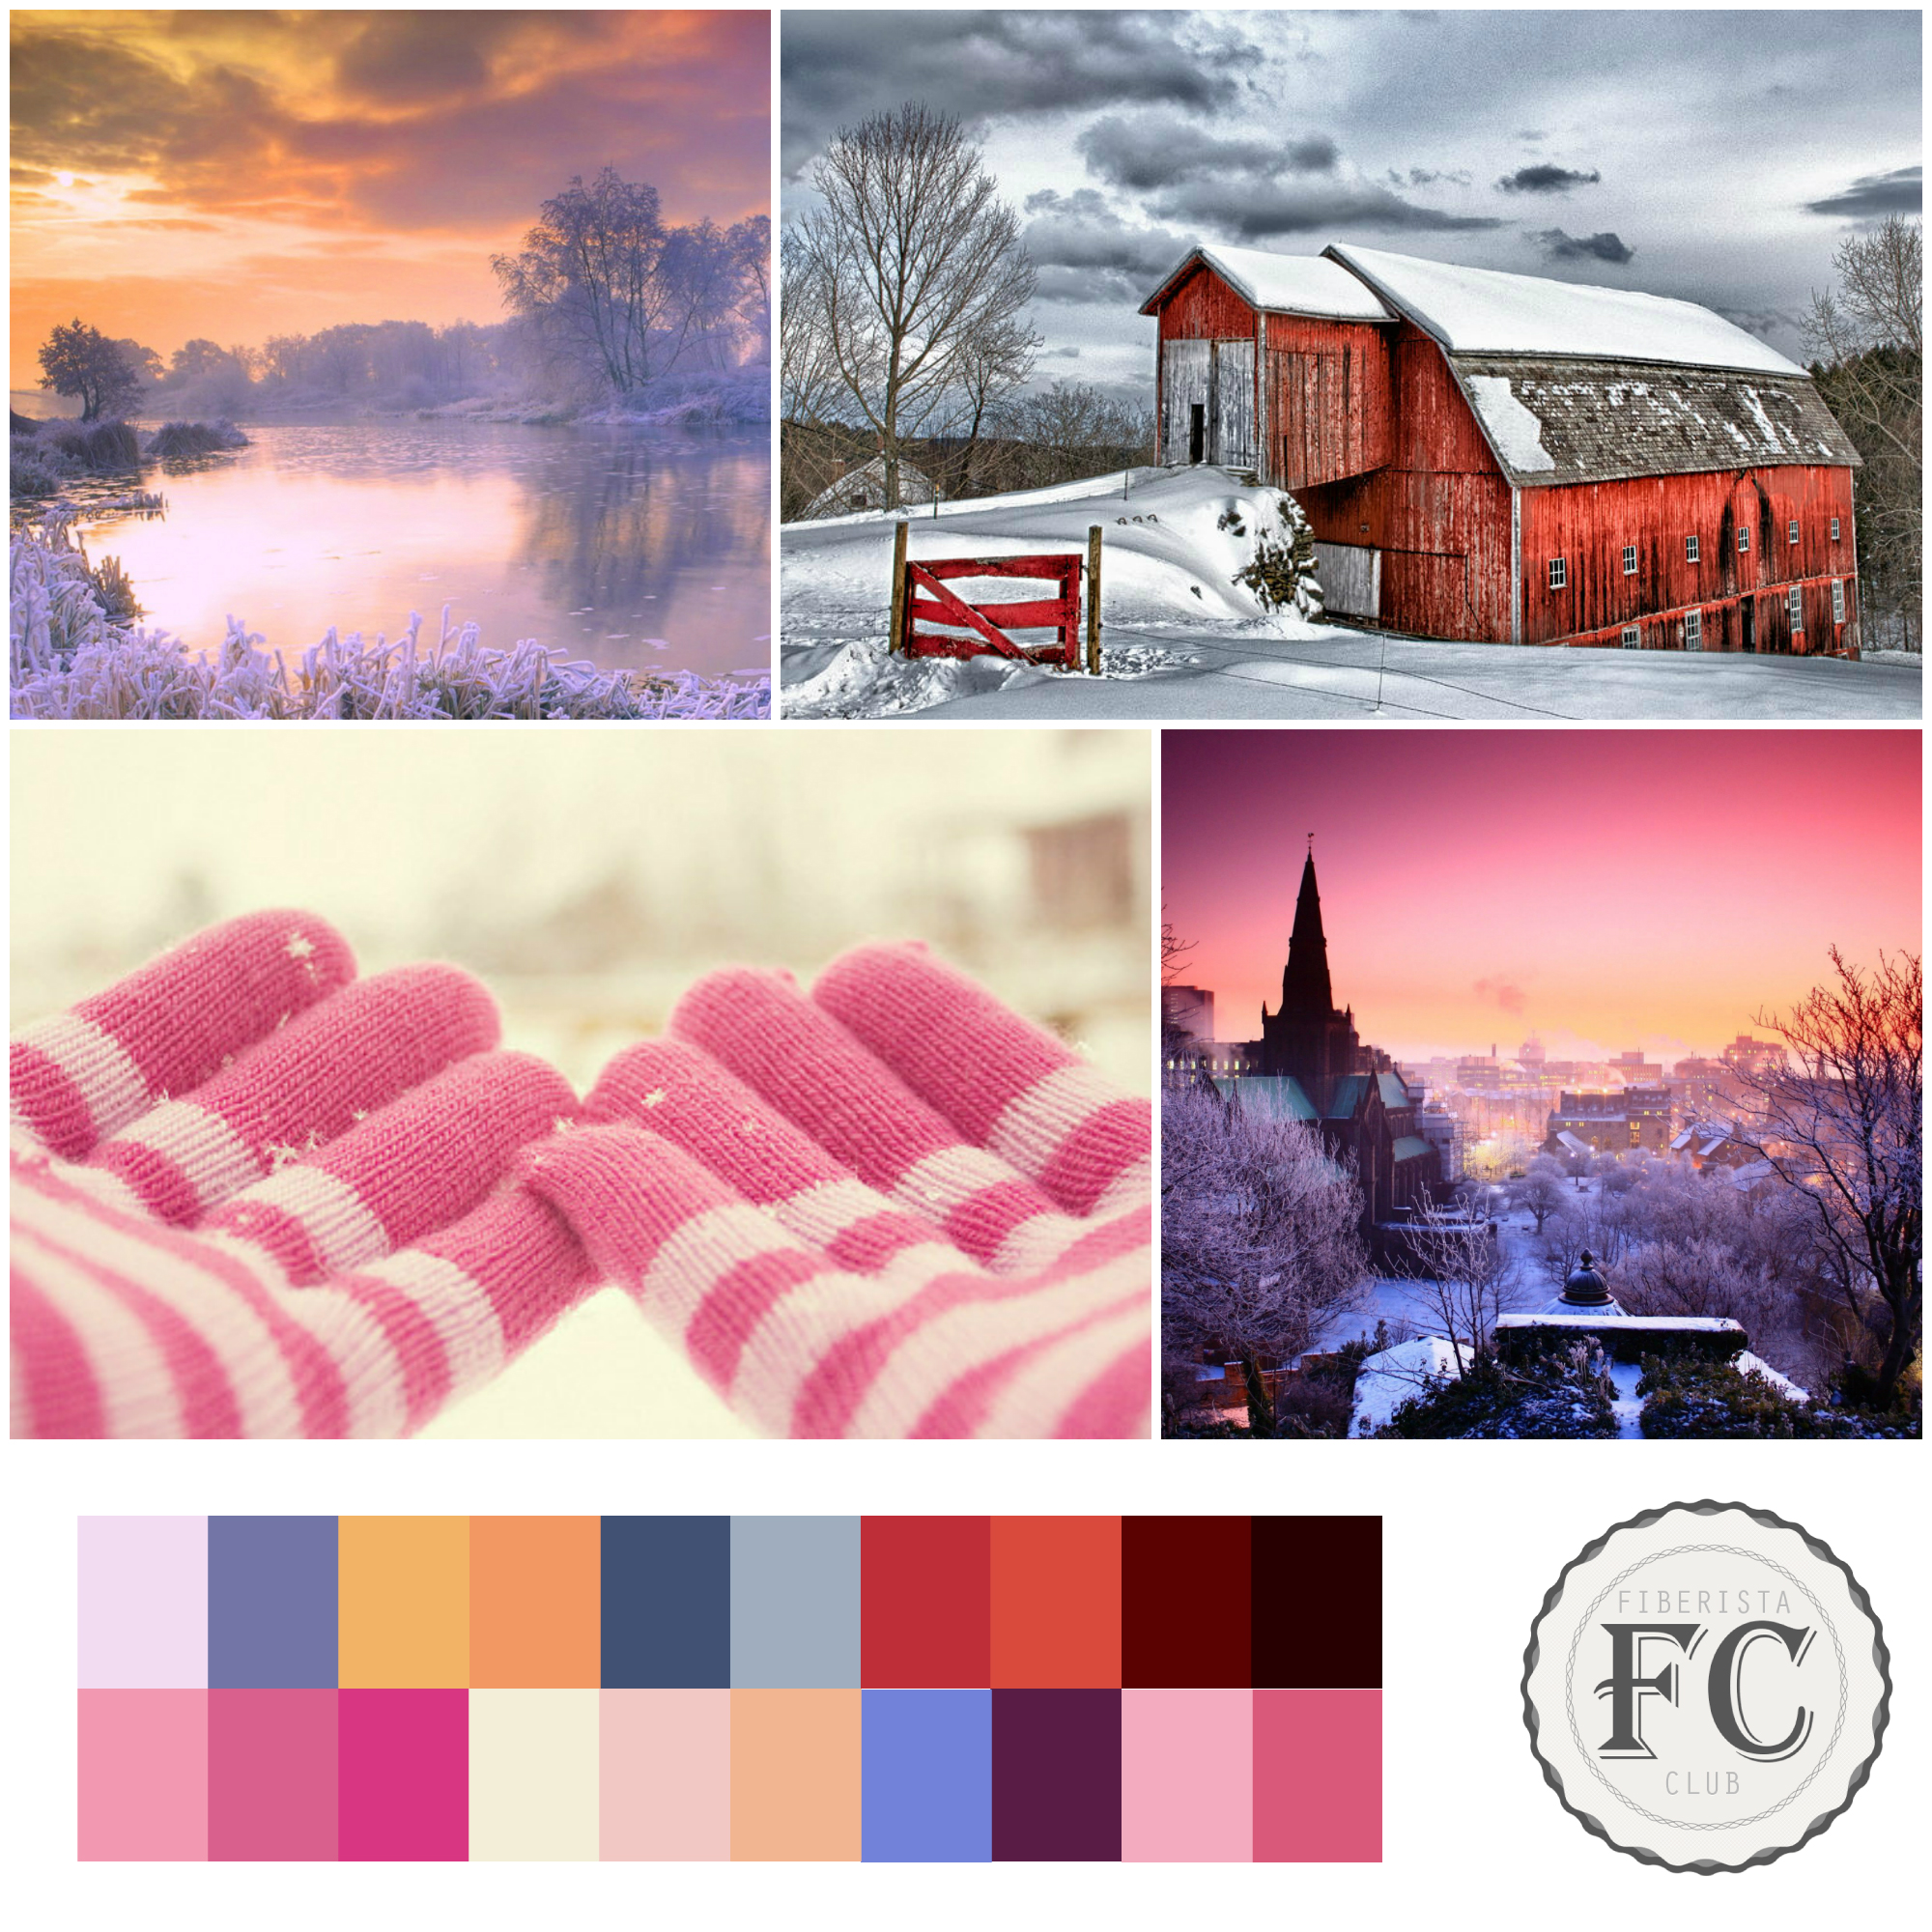 Our warm mood board for January 2015.